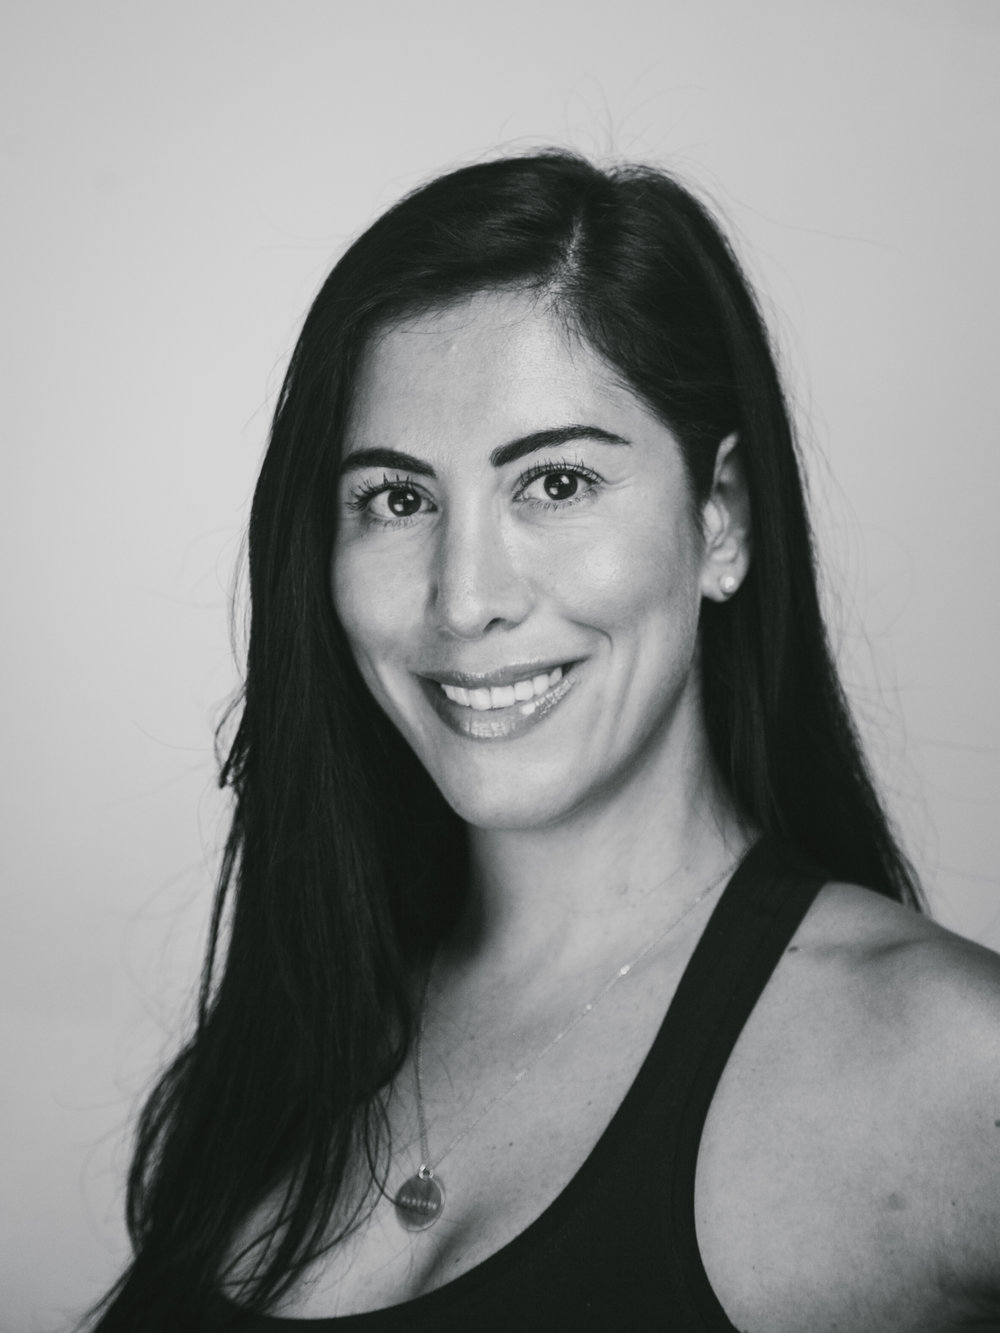 Parinaz Samimi - I teach: YogaI set the bar high and my intention is to create an environment that allows my students to thrive, overcome self-imposed limitations, and rise to any challenge.Words I live by:Passion. Authenticity. Integrity. Live life passionately, authentically and honorably and show up as your best self in any given moment.Beats I move to: I enjoy tunes that evoke emotion and allow for expression through movement. My playlists have beats that will create energy yet encourage a slow and controlled practice.What I live for:Life is too short to be static and comfortable. My passion and zest for life comes from being challenged and identifying new pathways to my growth because